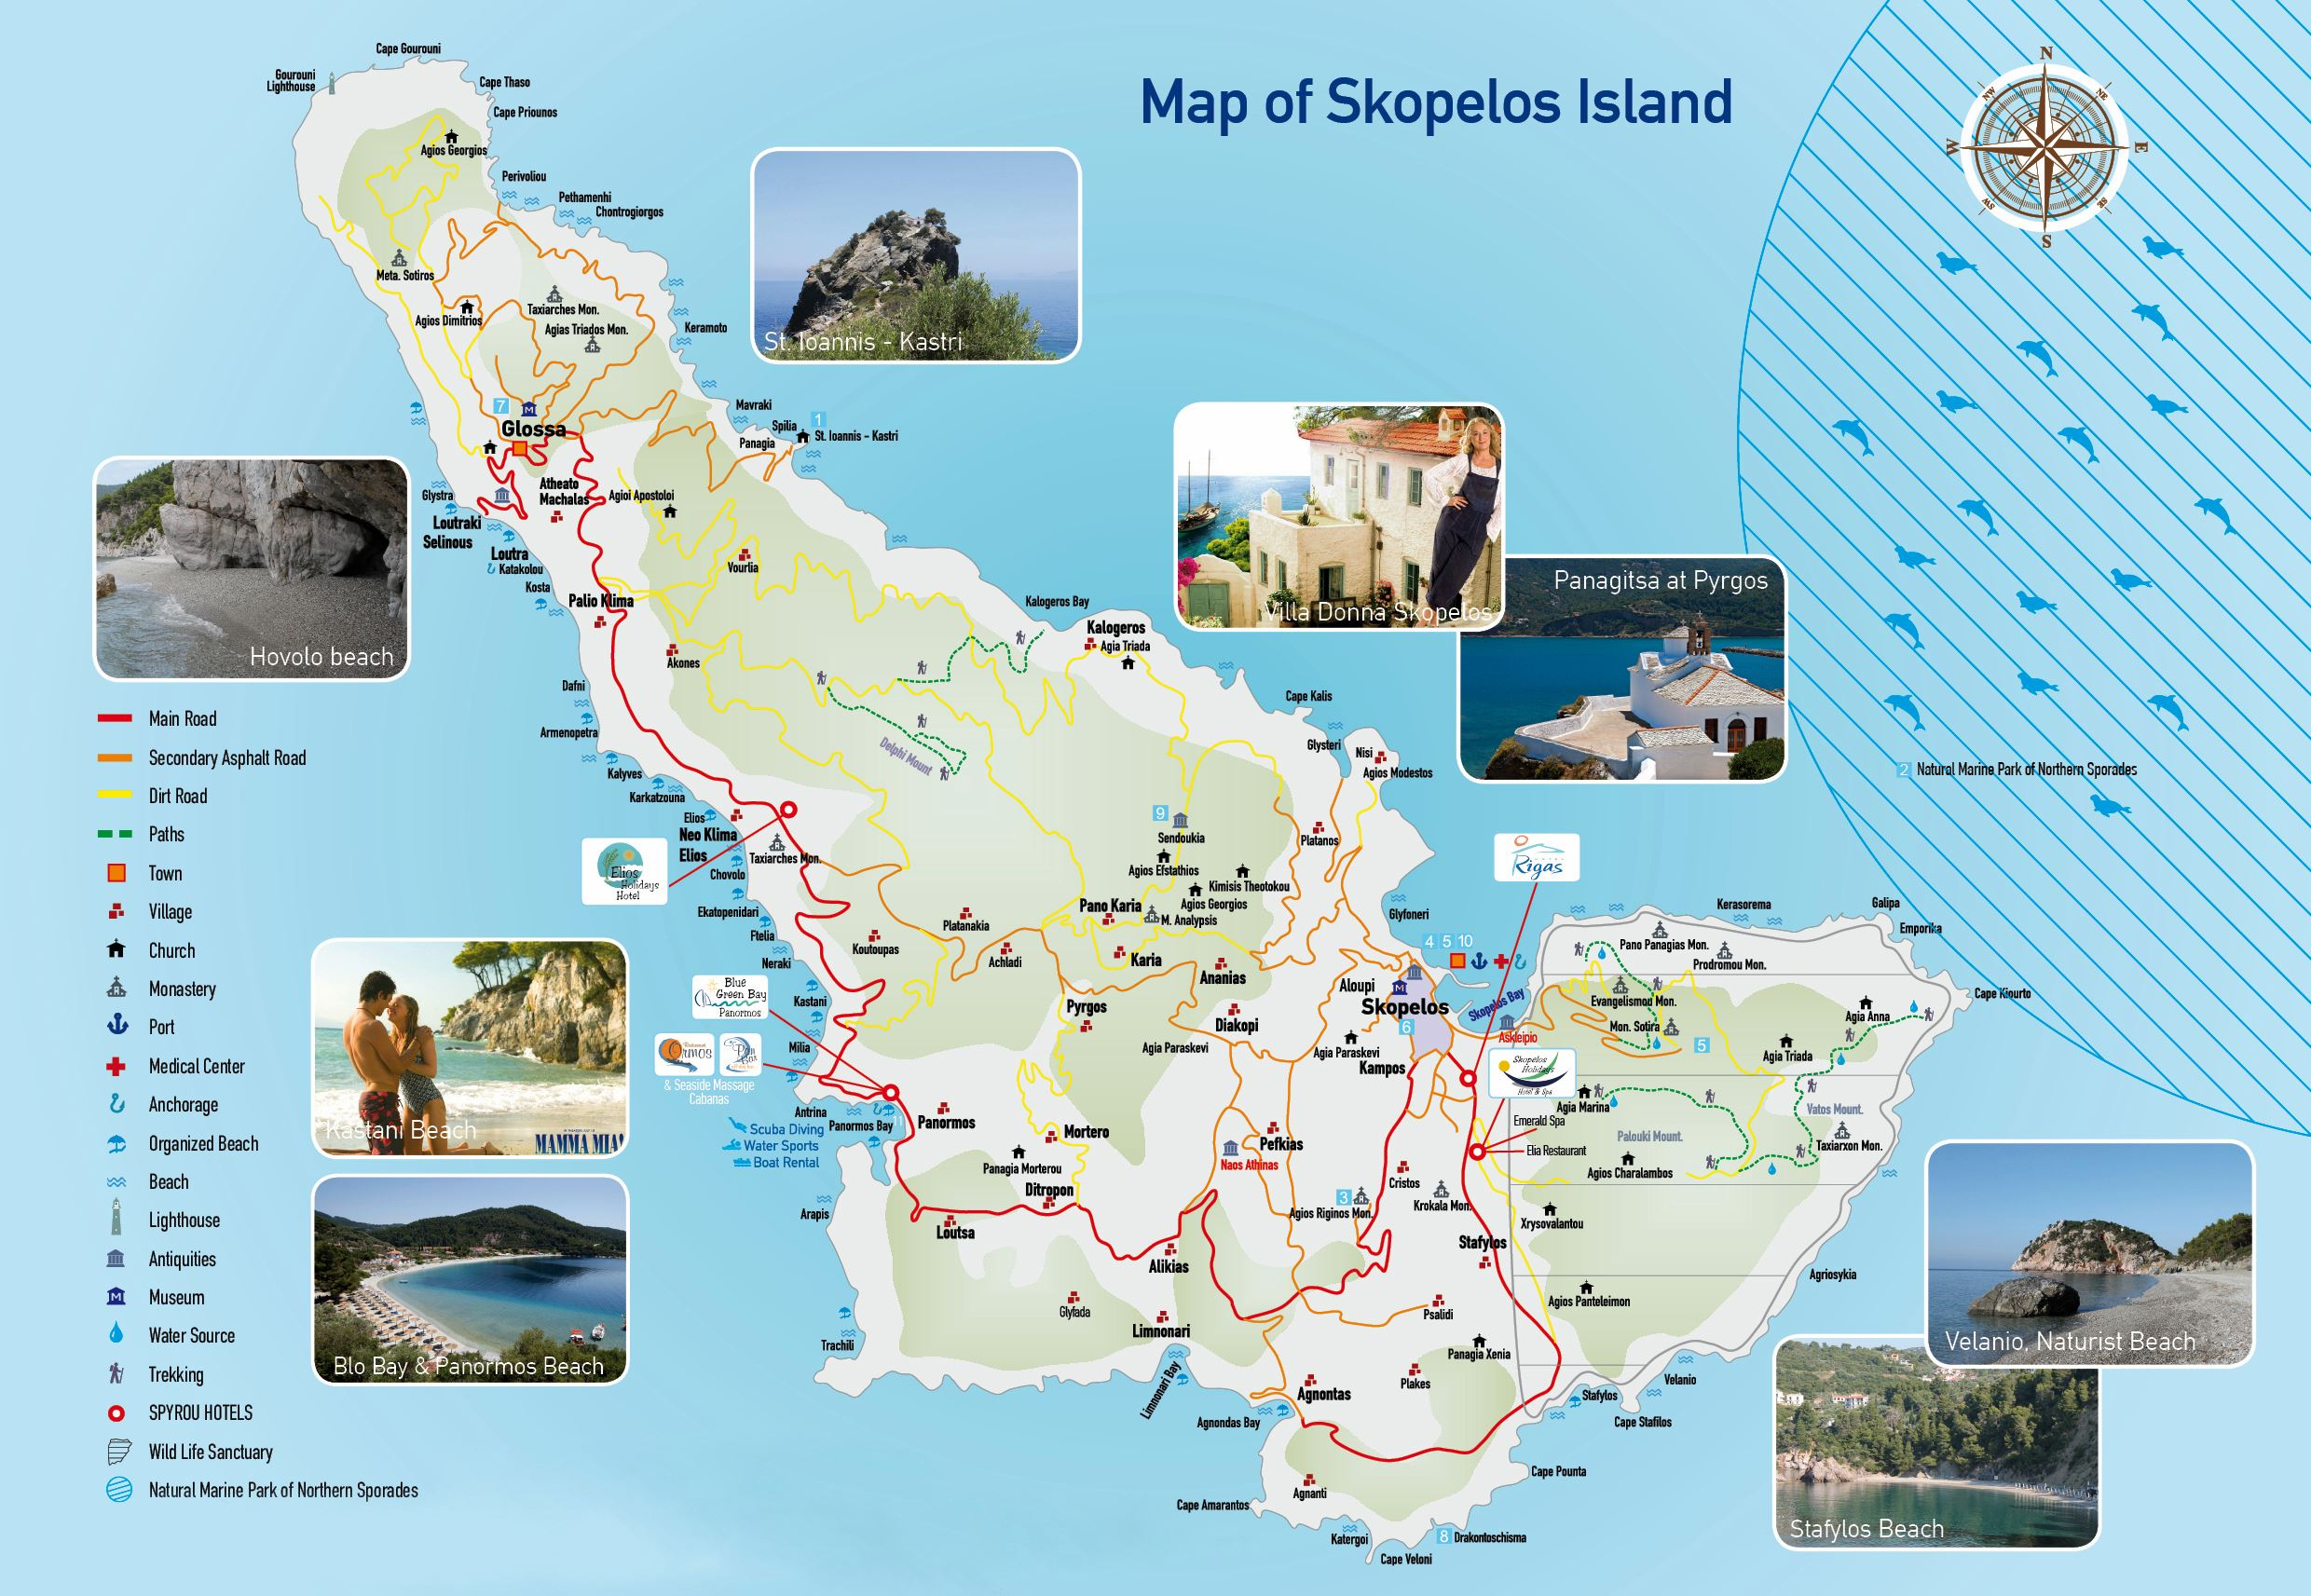 Map Of Skopelos Island Large Skopelos Island Maps for Free Download and Print | High